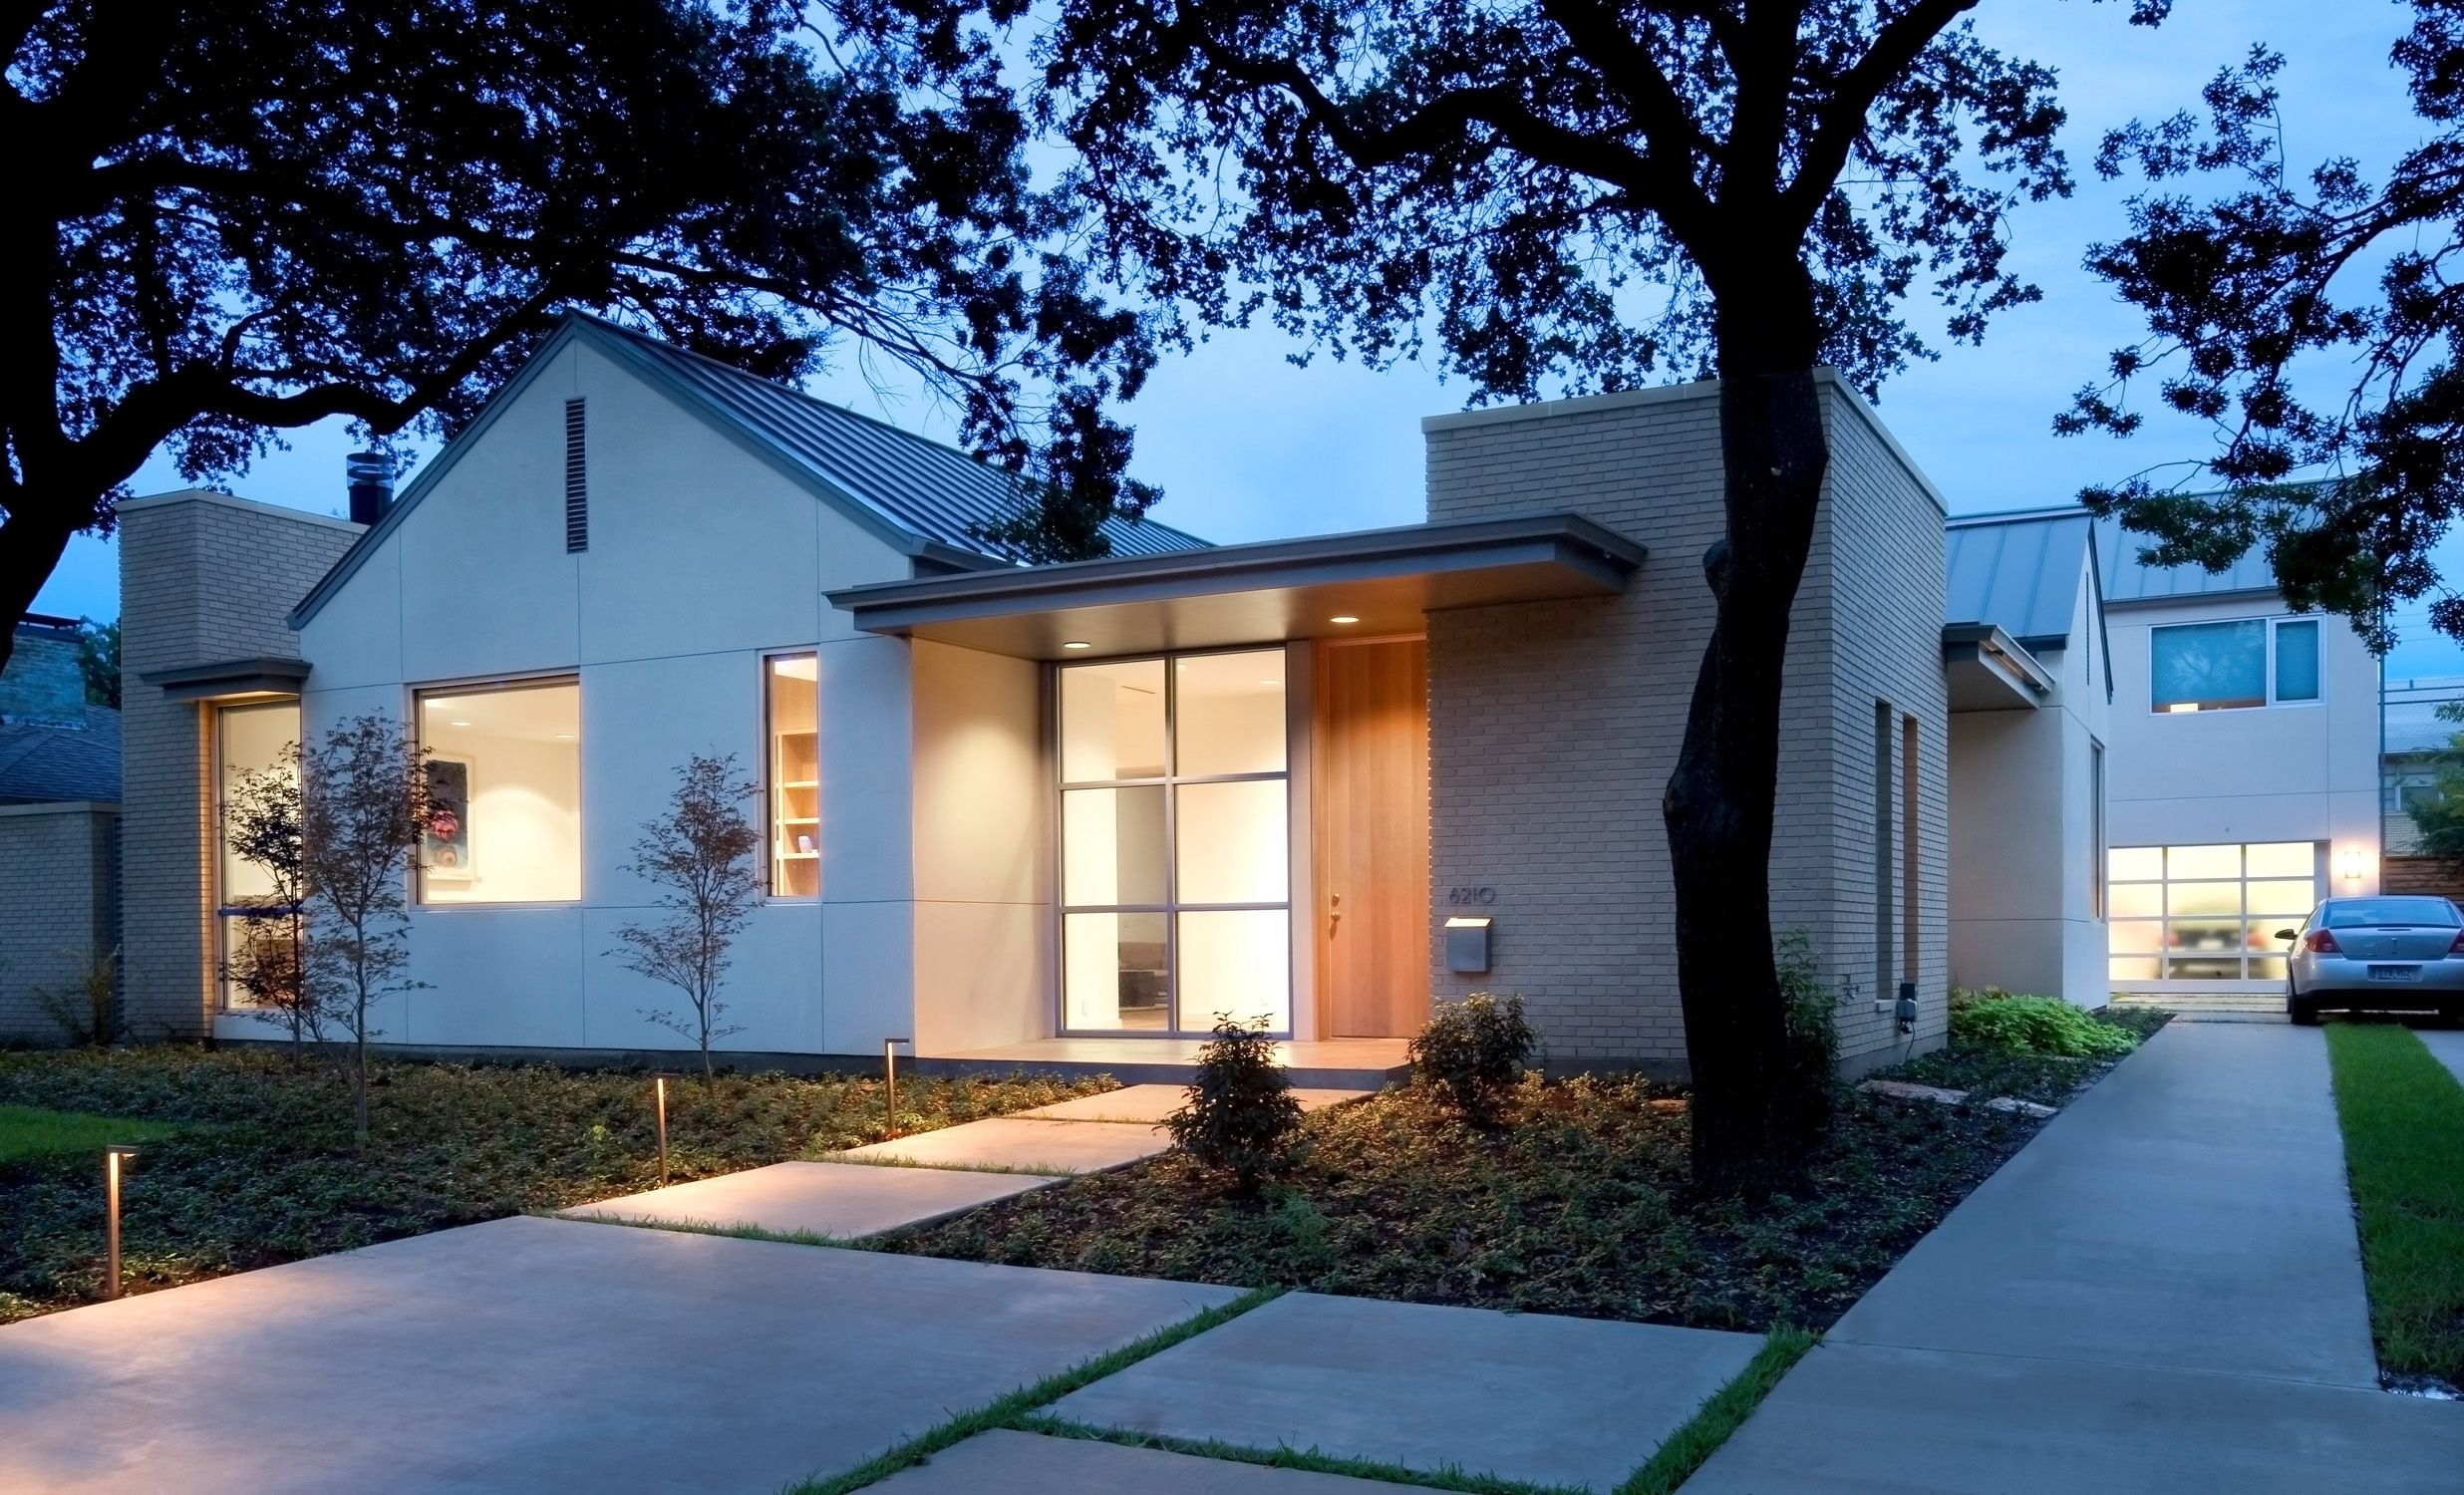 Modernist new build in Dallas I love the traditional references